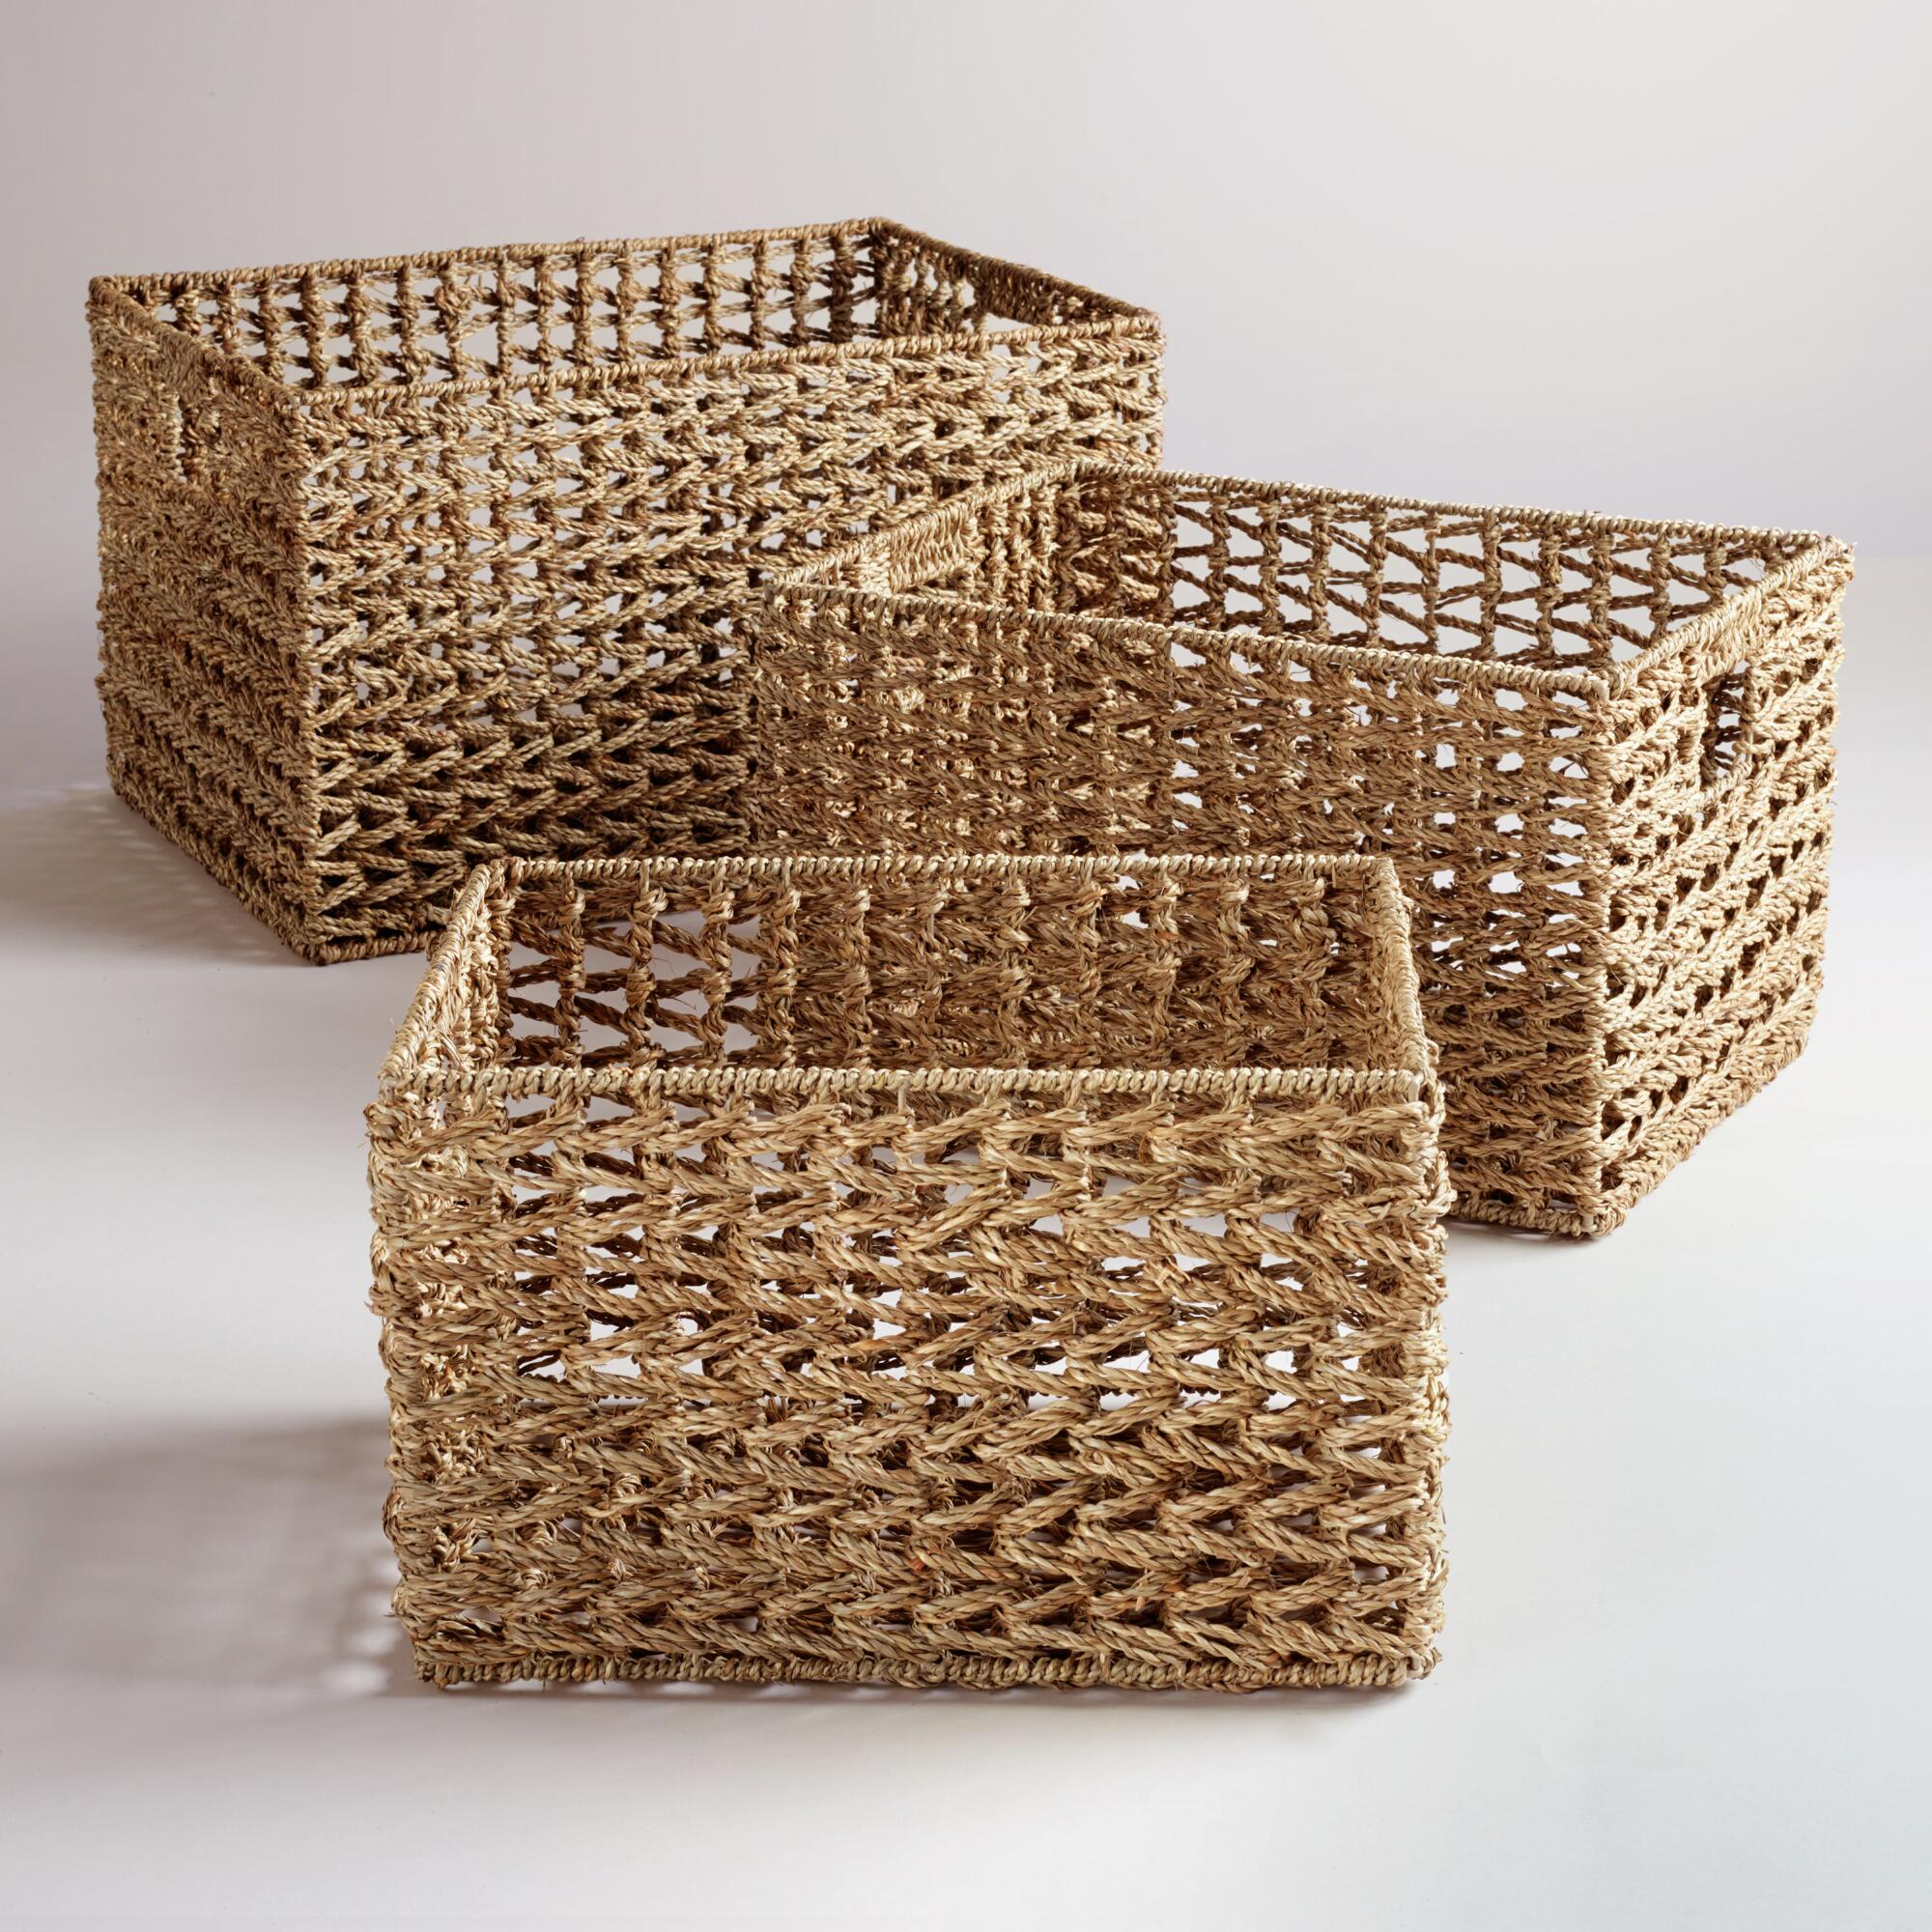 Basket Weaving Cane : The sunny path organization ideas and inspiration